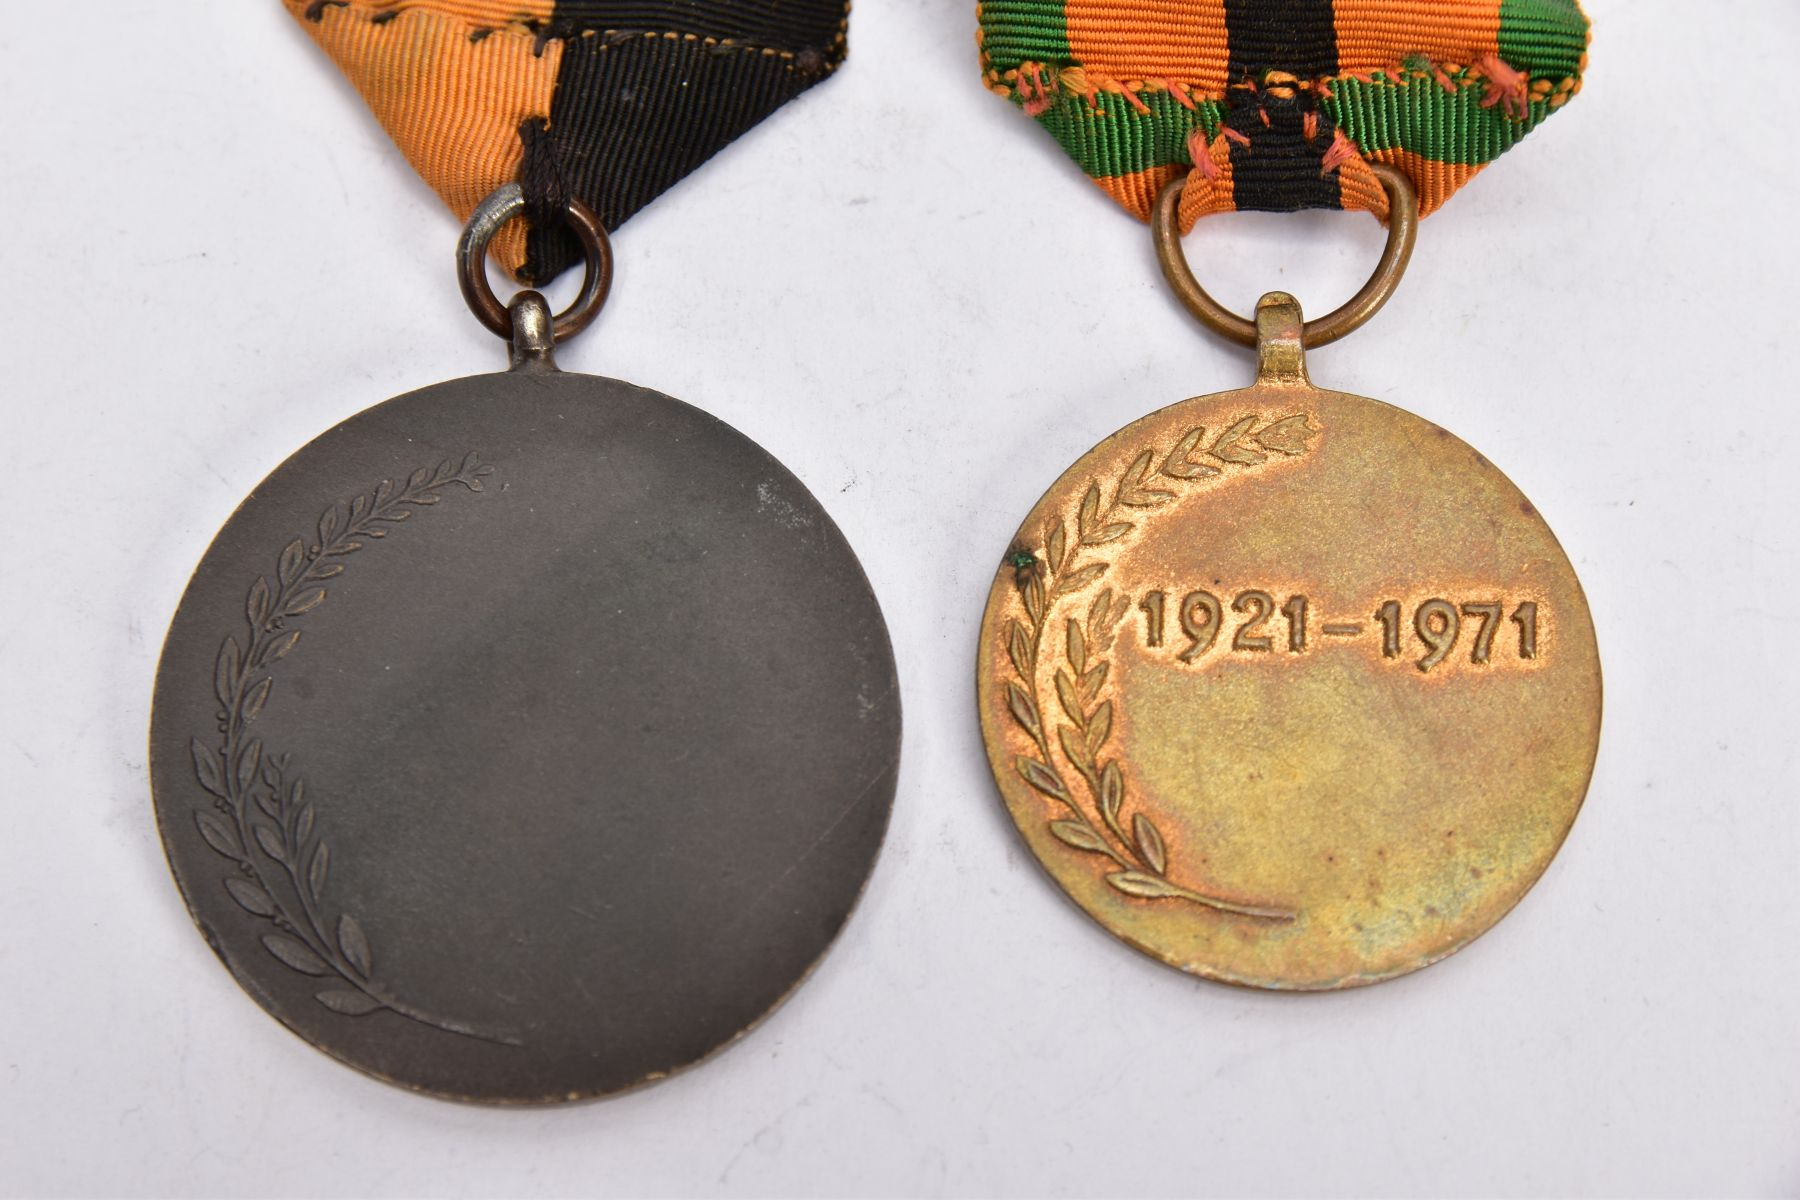 'IRISH WAR OF INDEPENDANCE MEDALS' both with wearing bar clasps, but believed to be later produced - Image 4 of 4